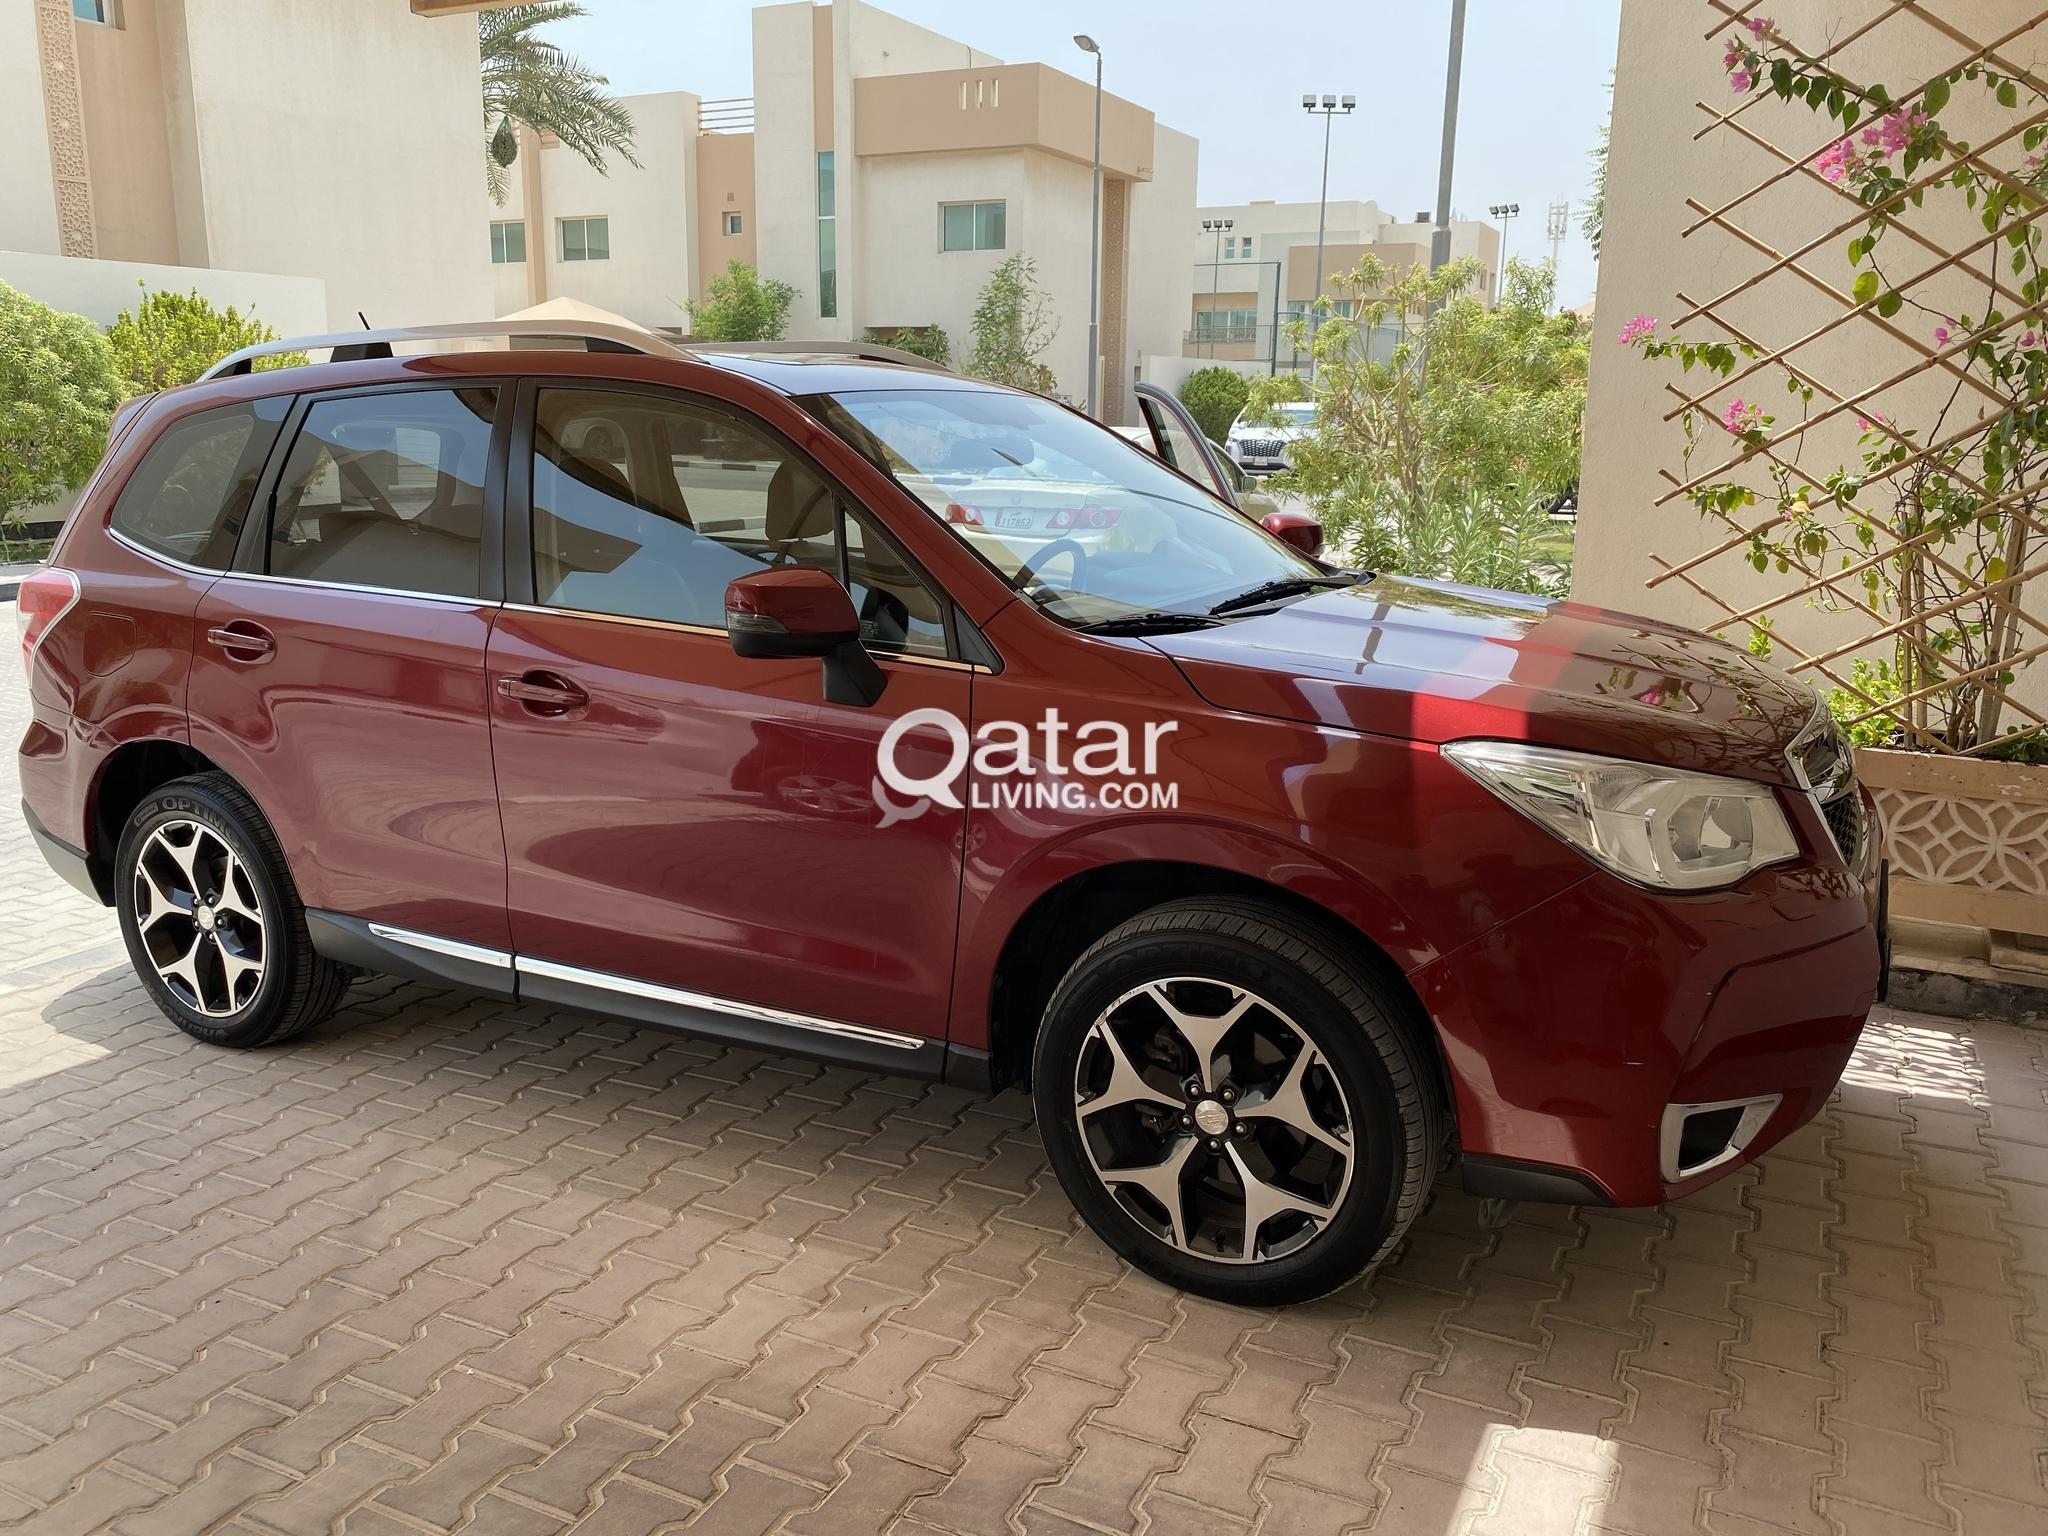 Selling Subaru Forester 2014 good condition